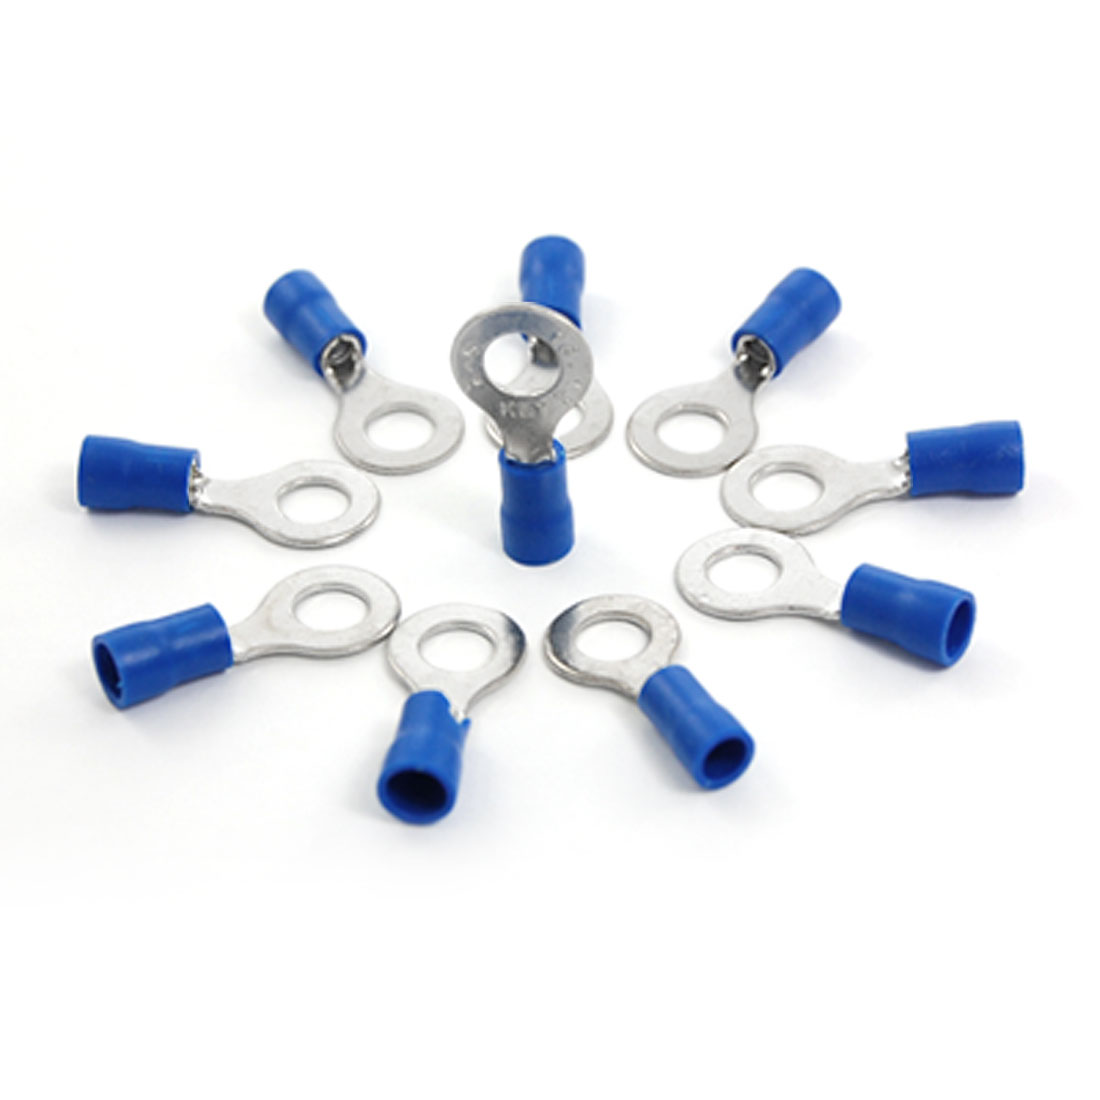 10 Pcs Blue PVC Sleeve Pre Insulated Ring Terminals RV2-6